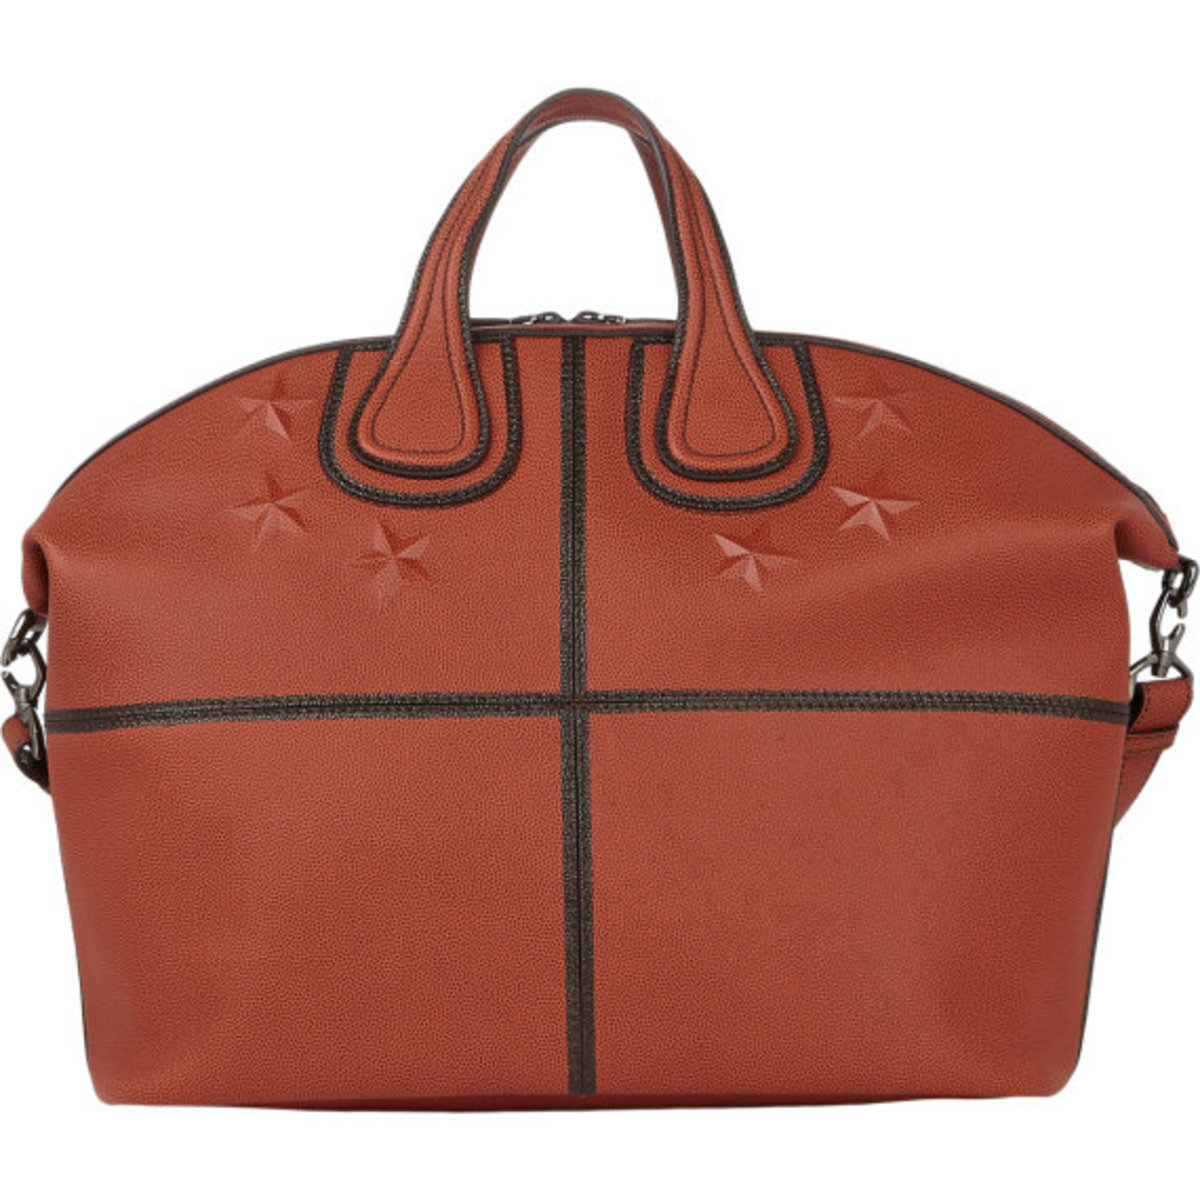 GIVENCHY - Star-Studded Nightingale Tote in Basketball Leather - 3